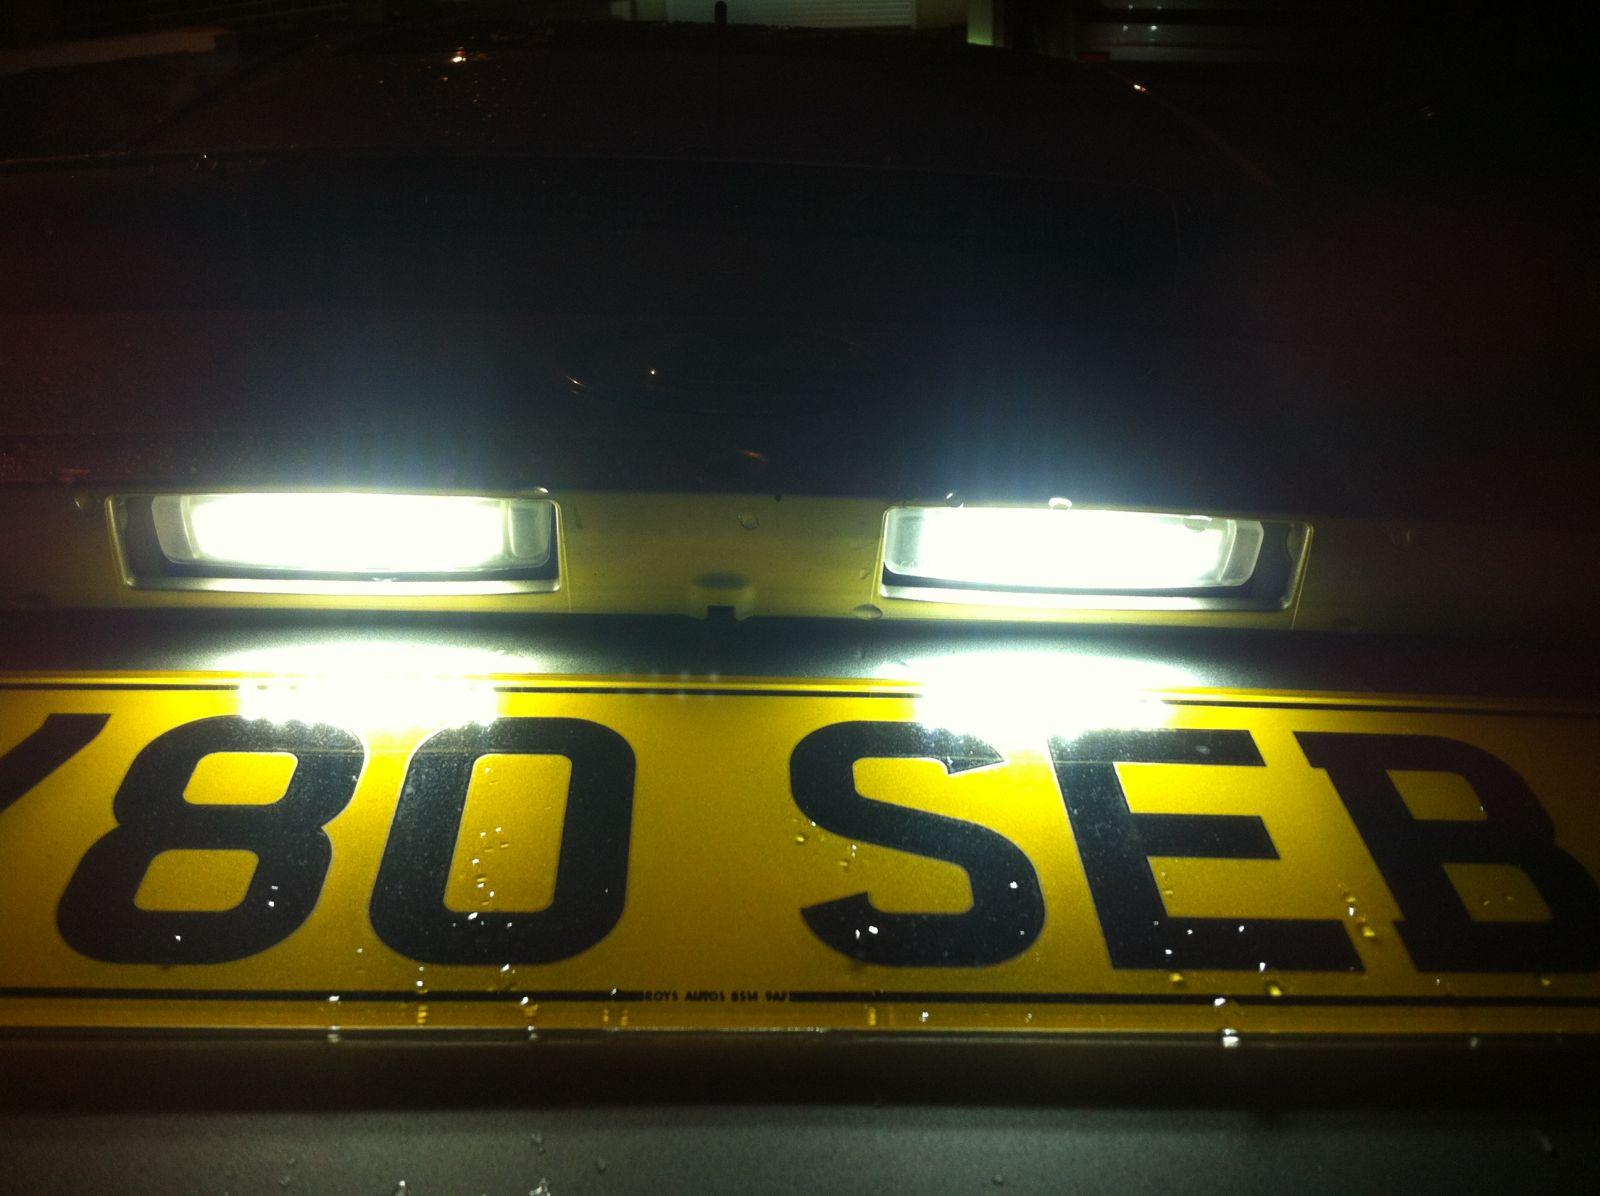 New LED rear number plate light conversion